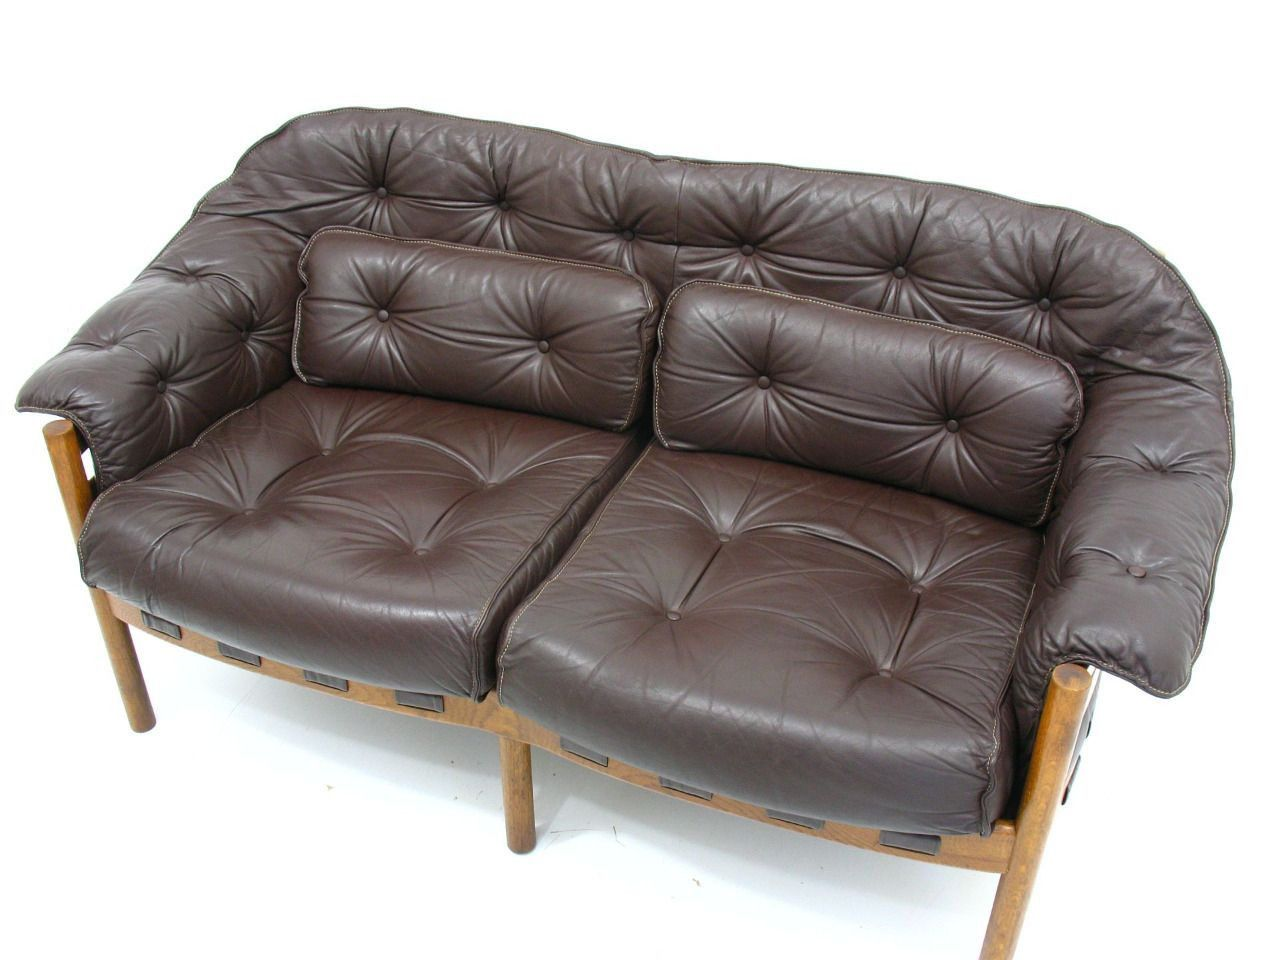 4 Seater Leather Sofas Decorating